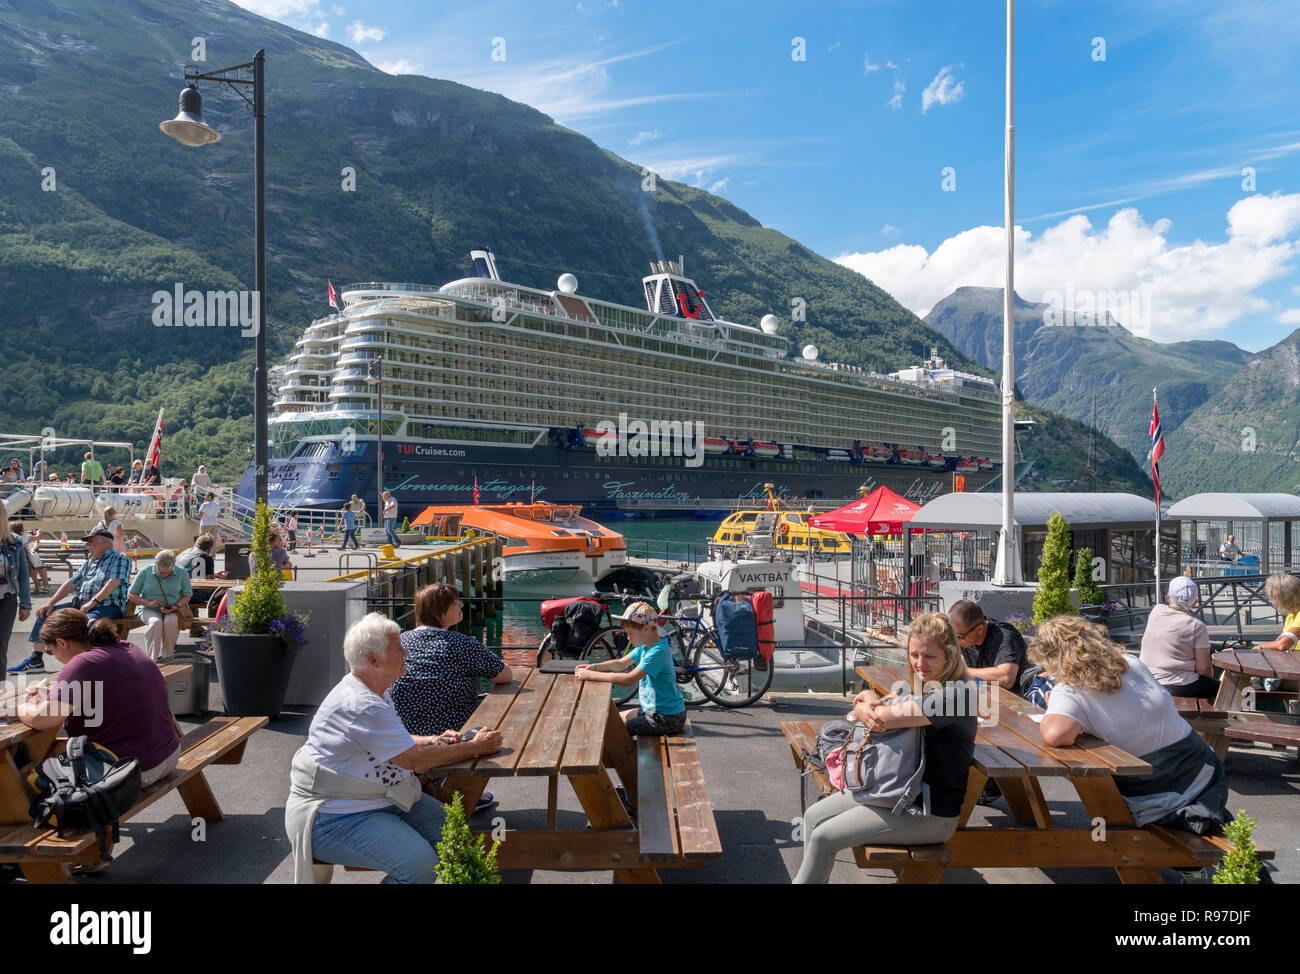 Quayside with Tui Mein Schiff 1 cruise ship in the background, Geiranger, Møre og Romsdal, Sunnmøre, Norway - Stock Image